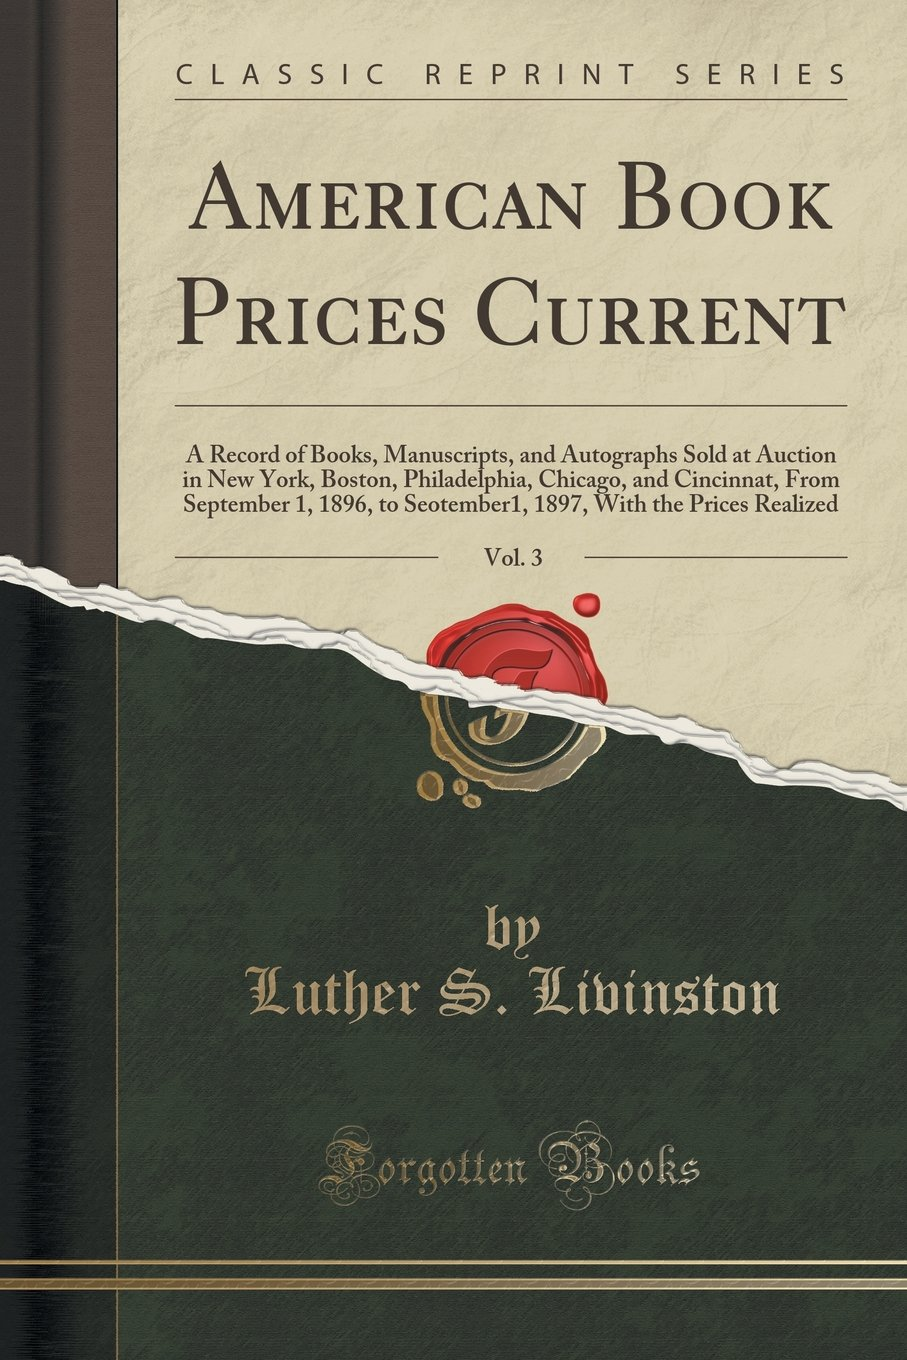 Read Online American Book Prices Current, Vol. 3: A Record of Books, Manuscripts, and Autographs Sold at Auction in New York, Boston, Philadelphia, Chicago, and ... With the Prices Realized (Classic Reprint) PDF